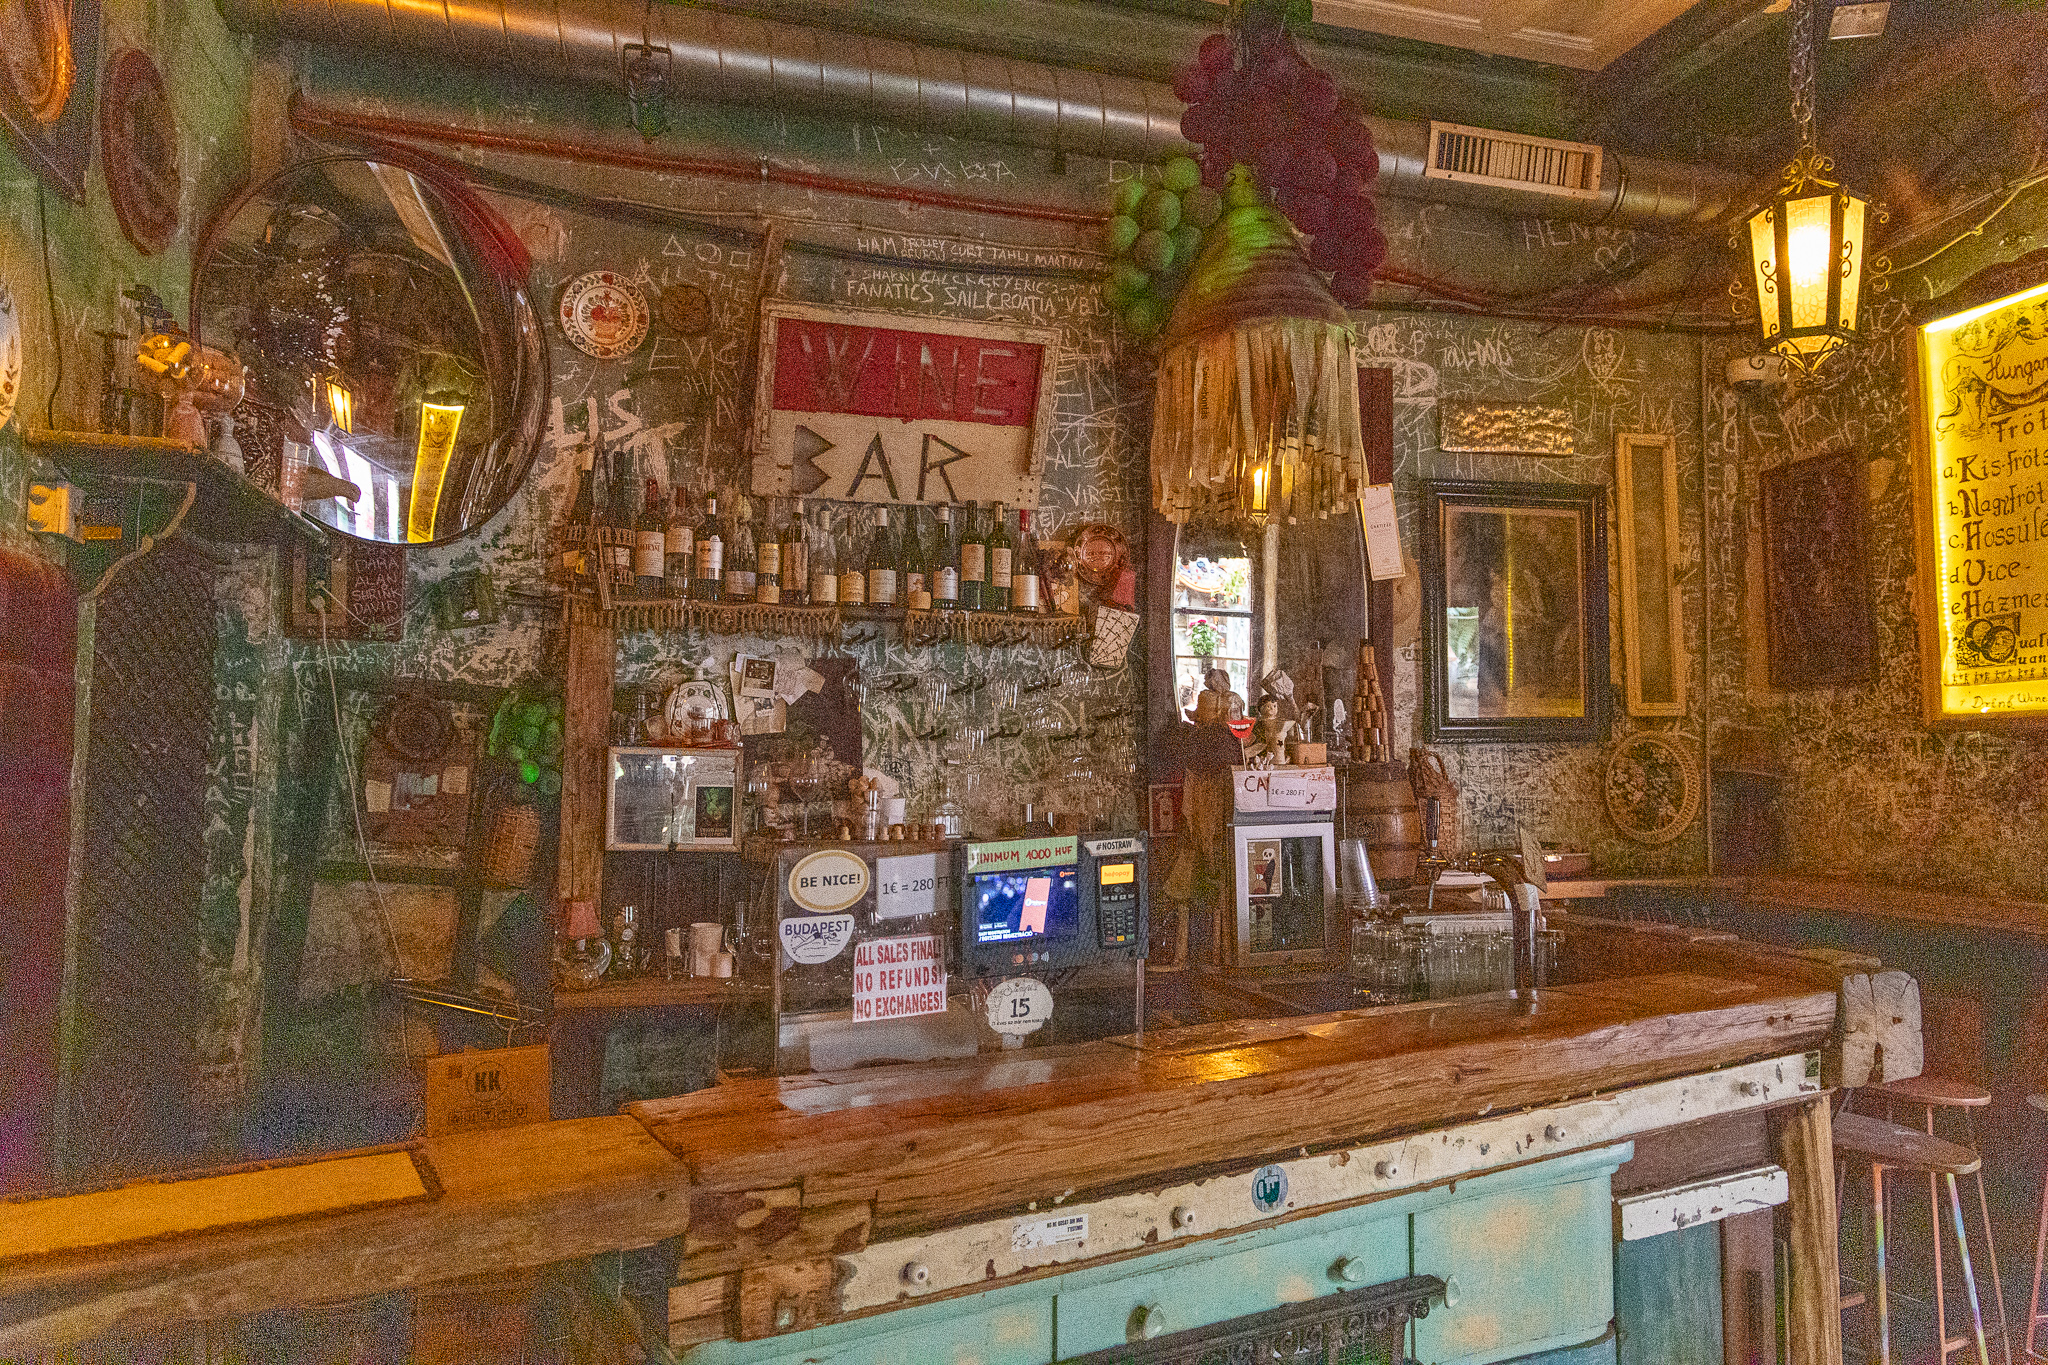 Your run of the mill wine bar, ruin-style